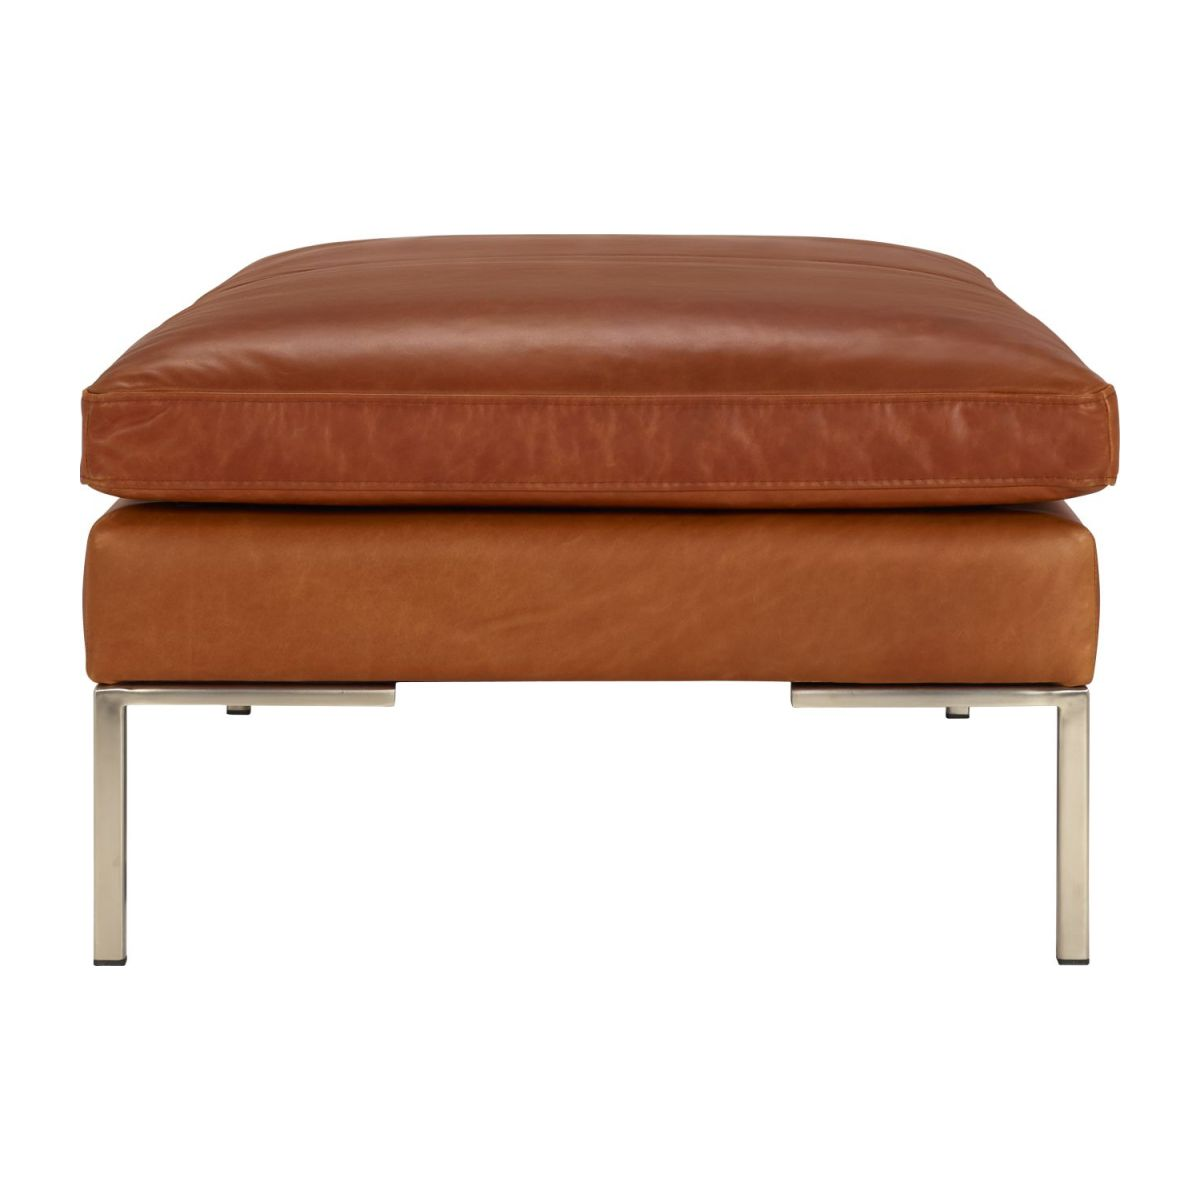 Footstool in Vintage aniline leather, old chestnut n°4